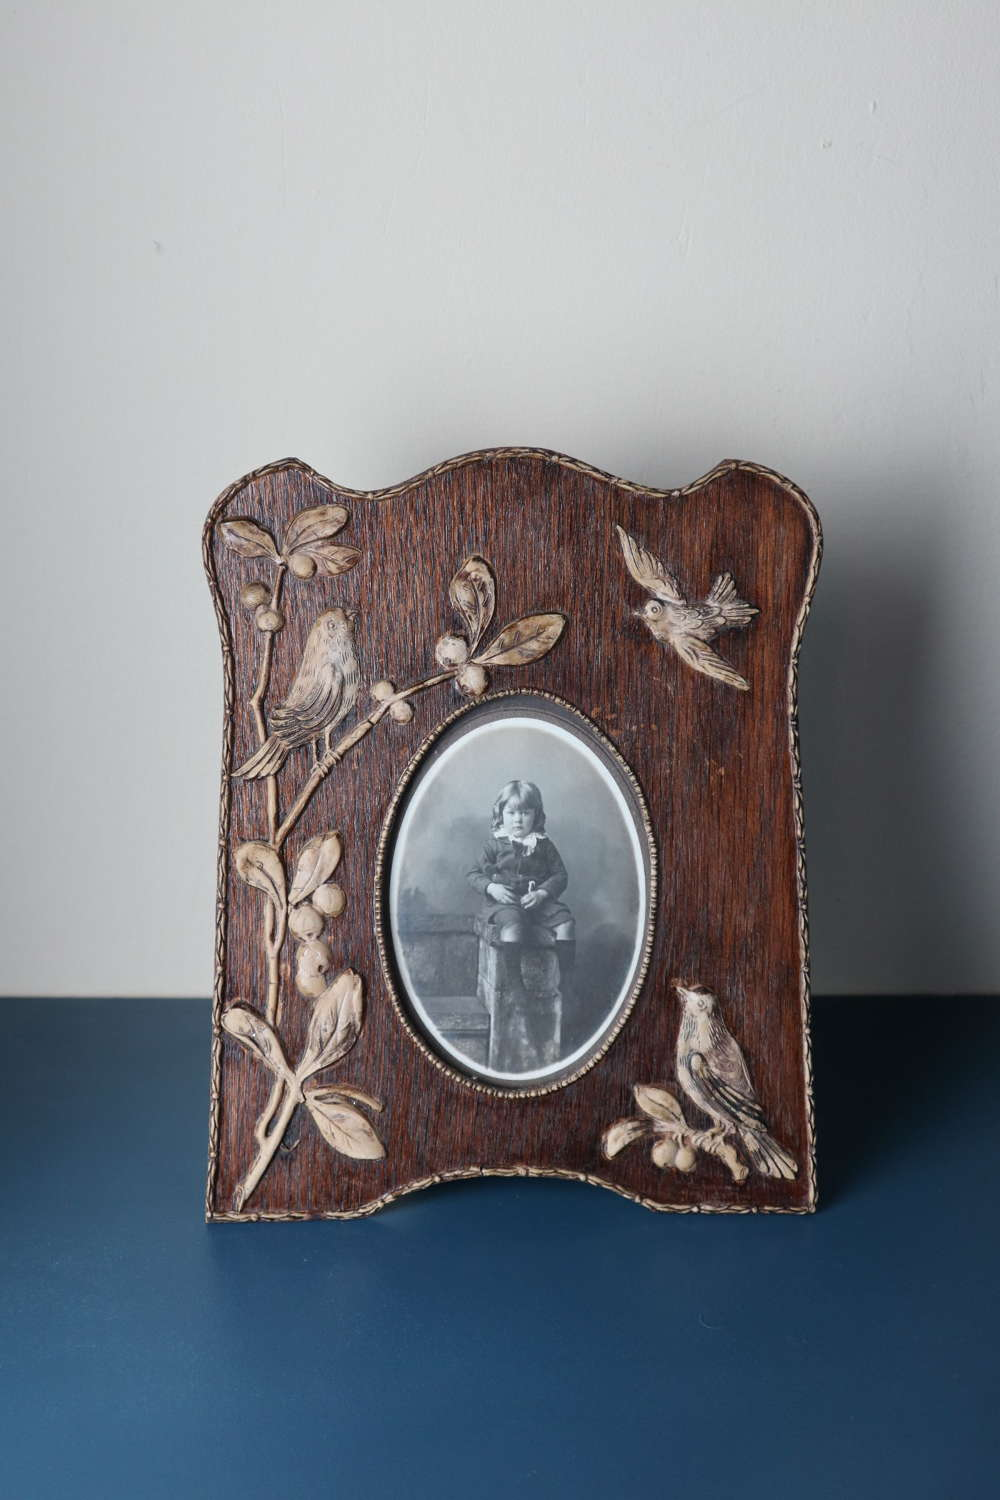 Art Nouveau / Jugendstil, Edwardian oval portrait photo frame c.1905.